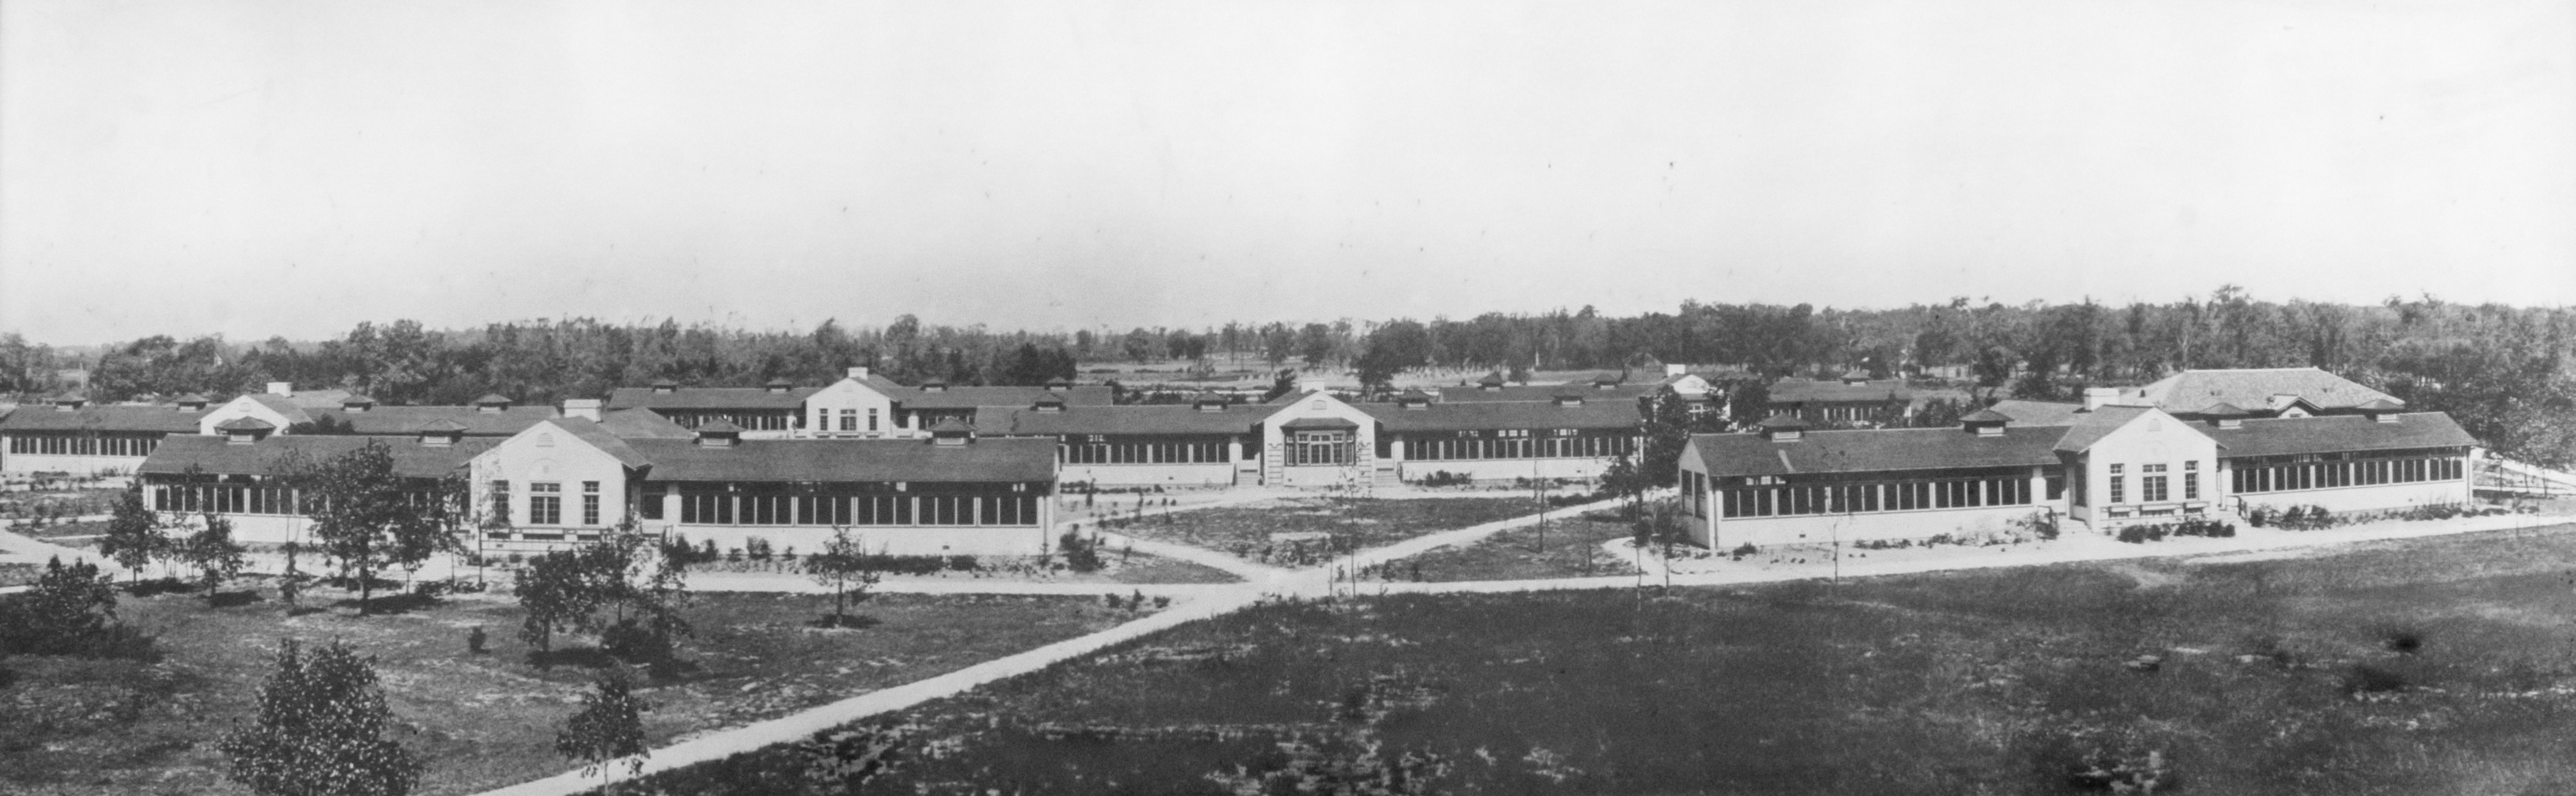 The patient cottages, seen here, have since been torn down. But many of the other buildings from the original campus are in use by the Chicago Park District. (Courtesy North River Commission)